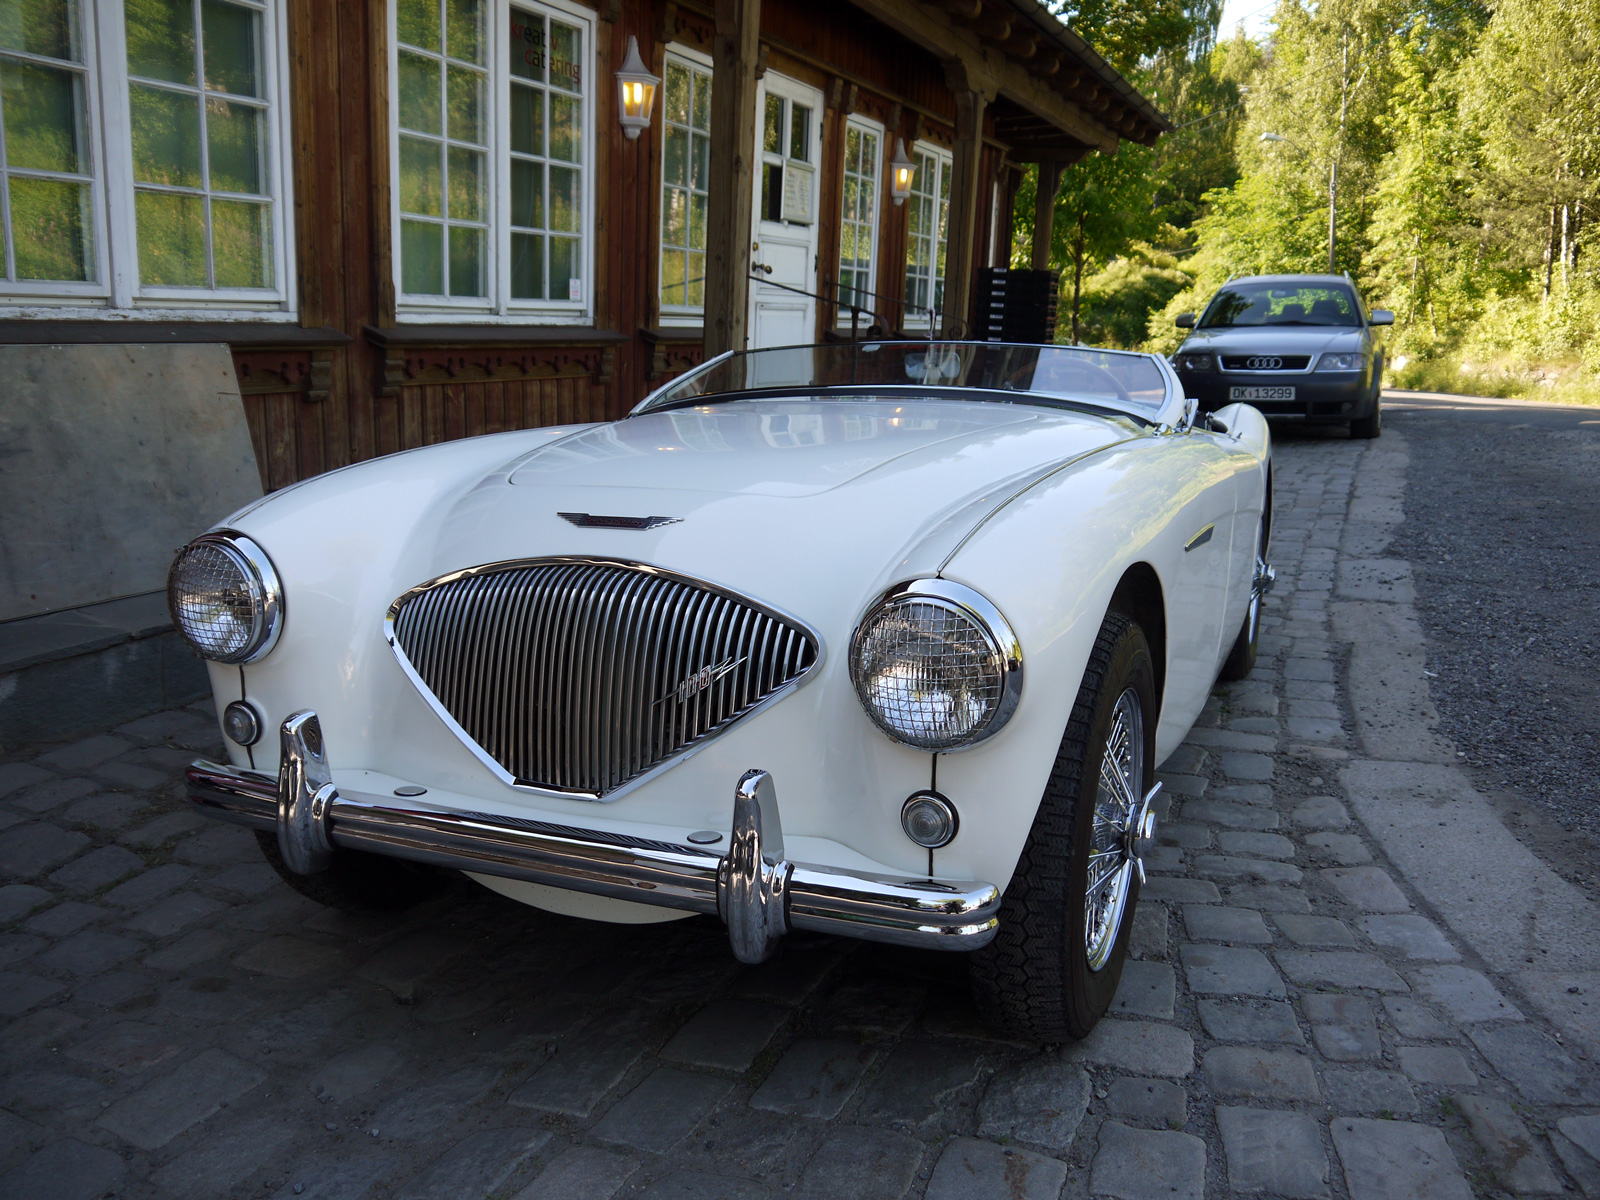 1956 Austin-Healey 100 BN2 Roadster british sports car oslo